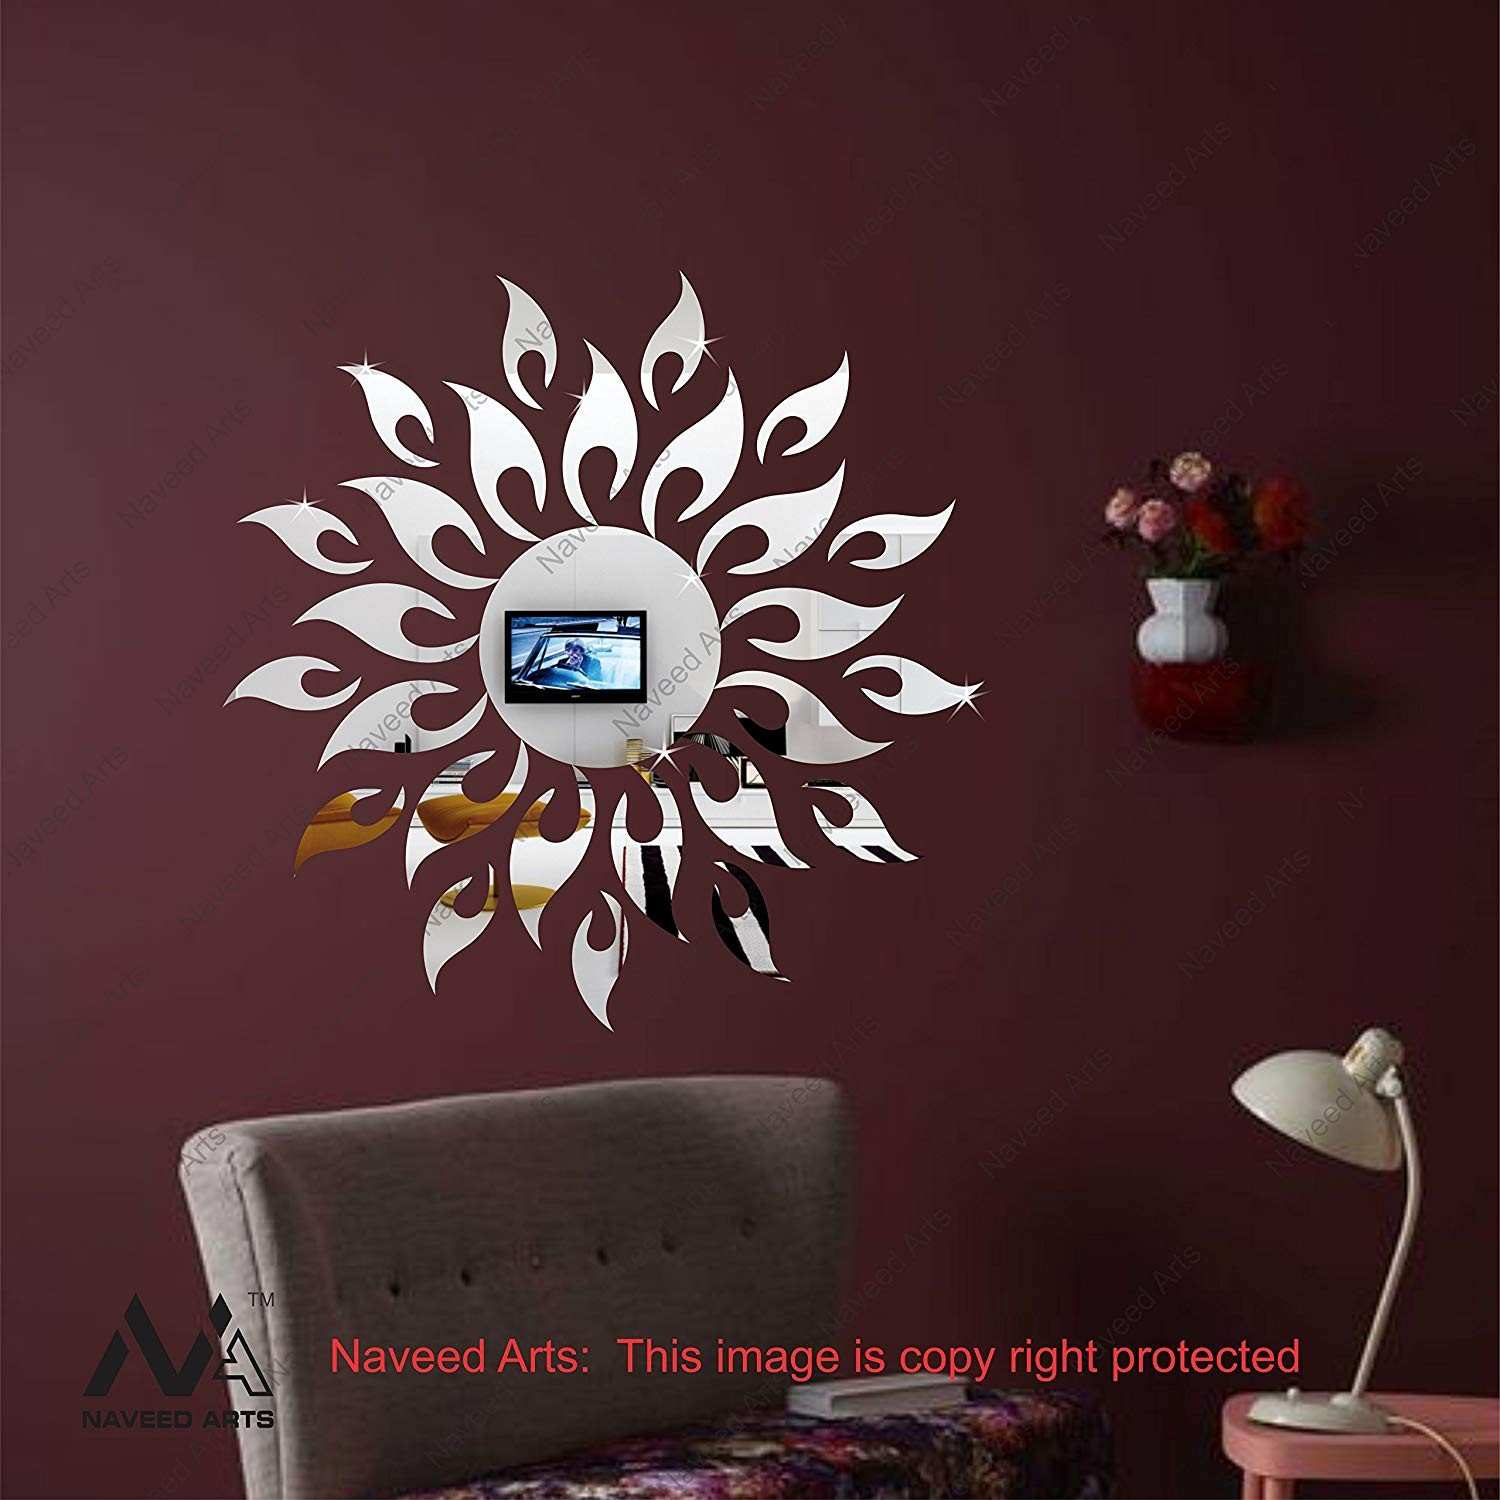 Buy Naveed Arts 61 cm x 61 cm Sun Silver Acrylic Mirror Decor